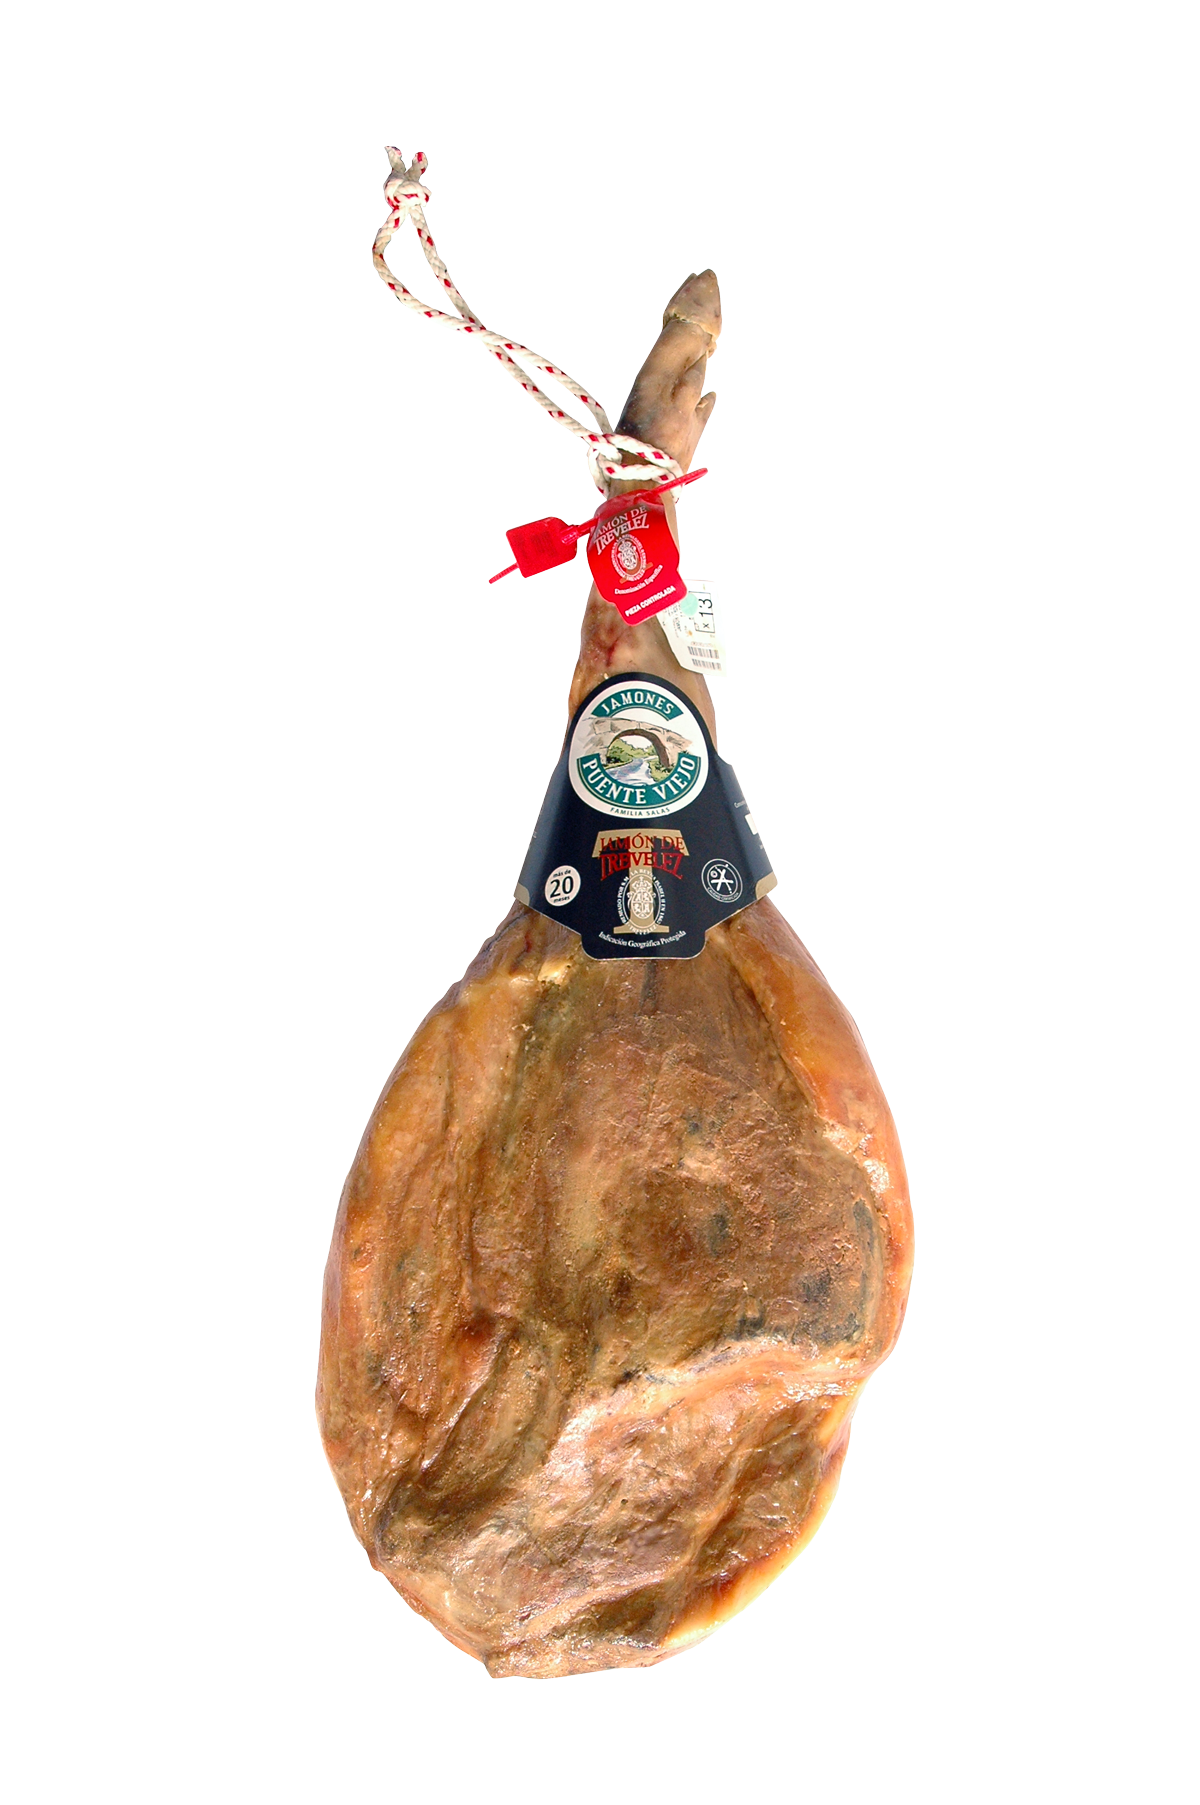 Png image purepng free. Meat clipart jamon